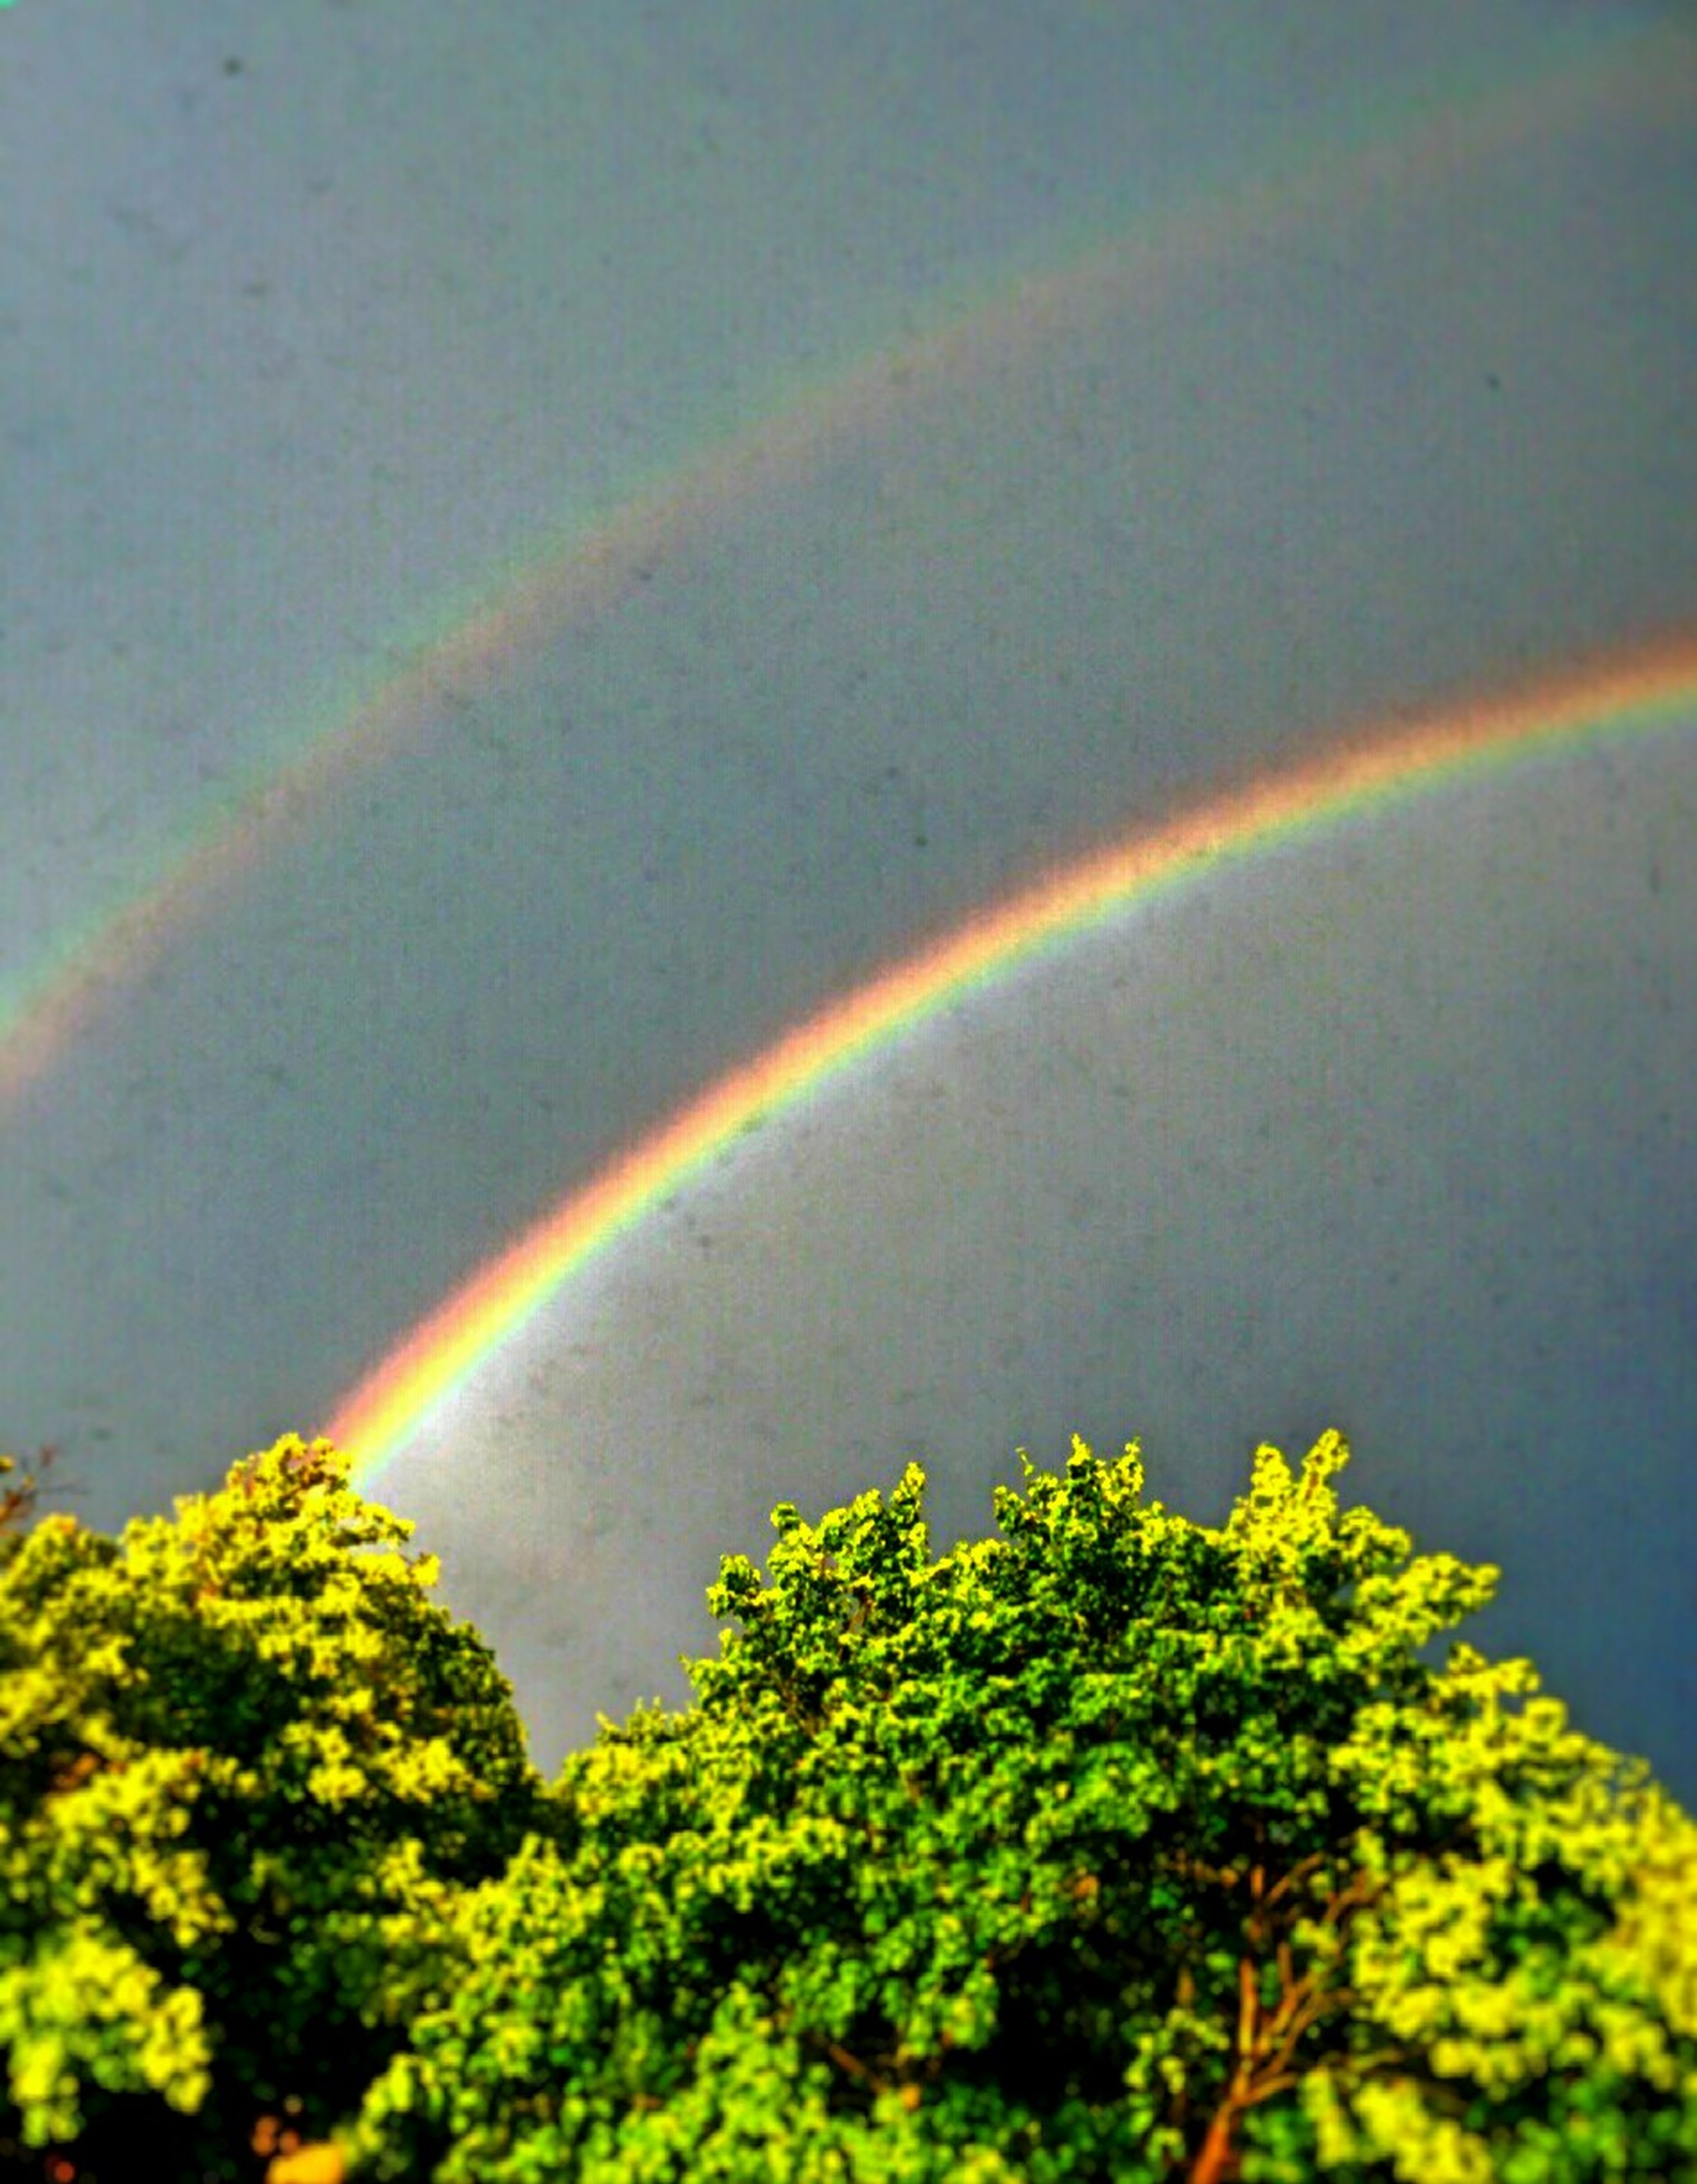 rainbow, multi colored, beauty in nature, scenics, sky, tranquil scene, tranquility, green color, nature, tree, idyllic, growth, landscape, outdoors, cloud - sky, green, lush foliage, no people, weather, colorful, plant, day, majestic, non-urban scene, remote, cloud, cloudy